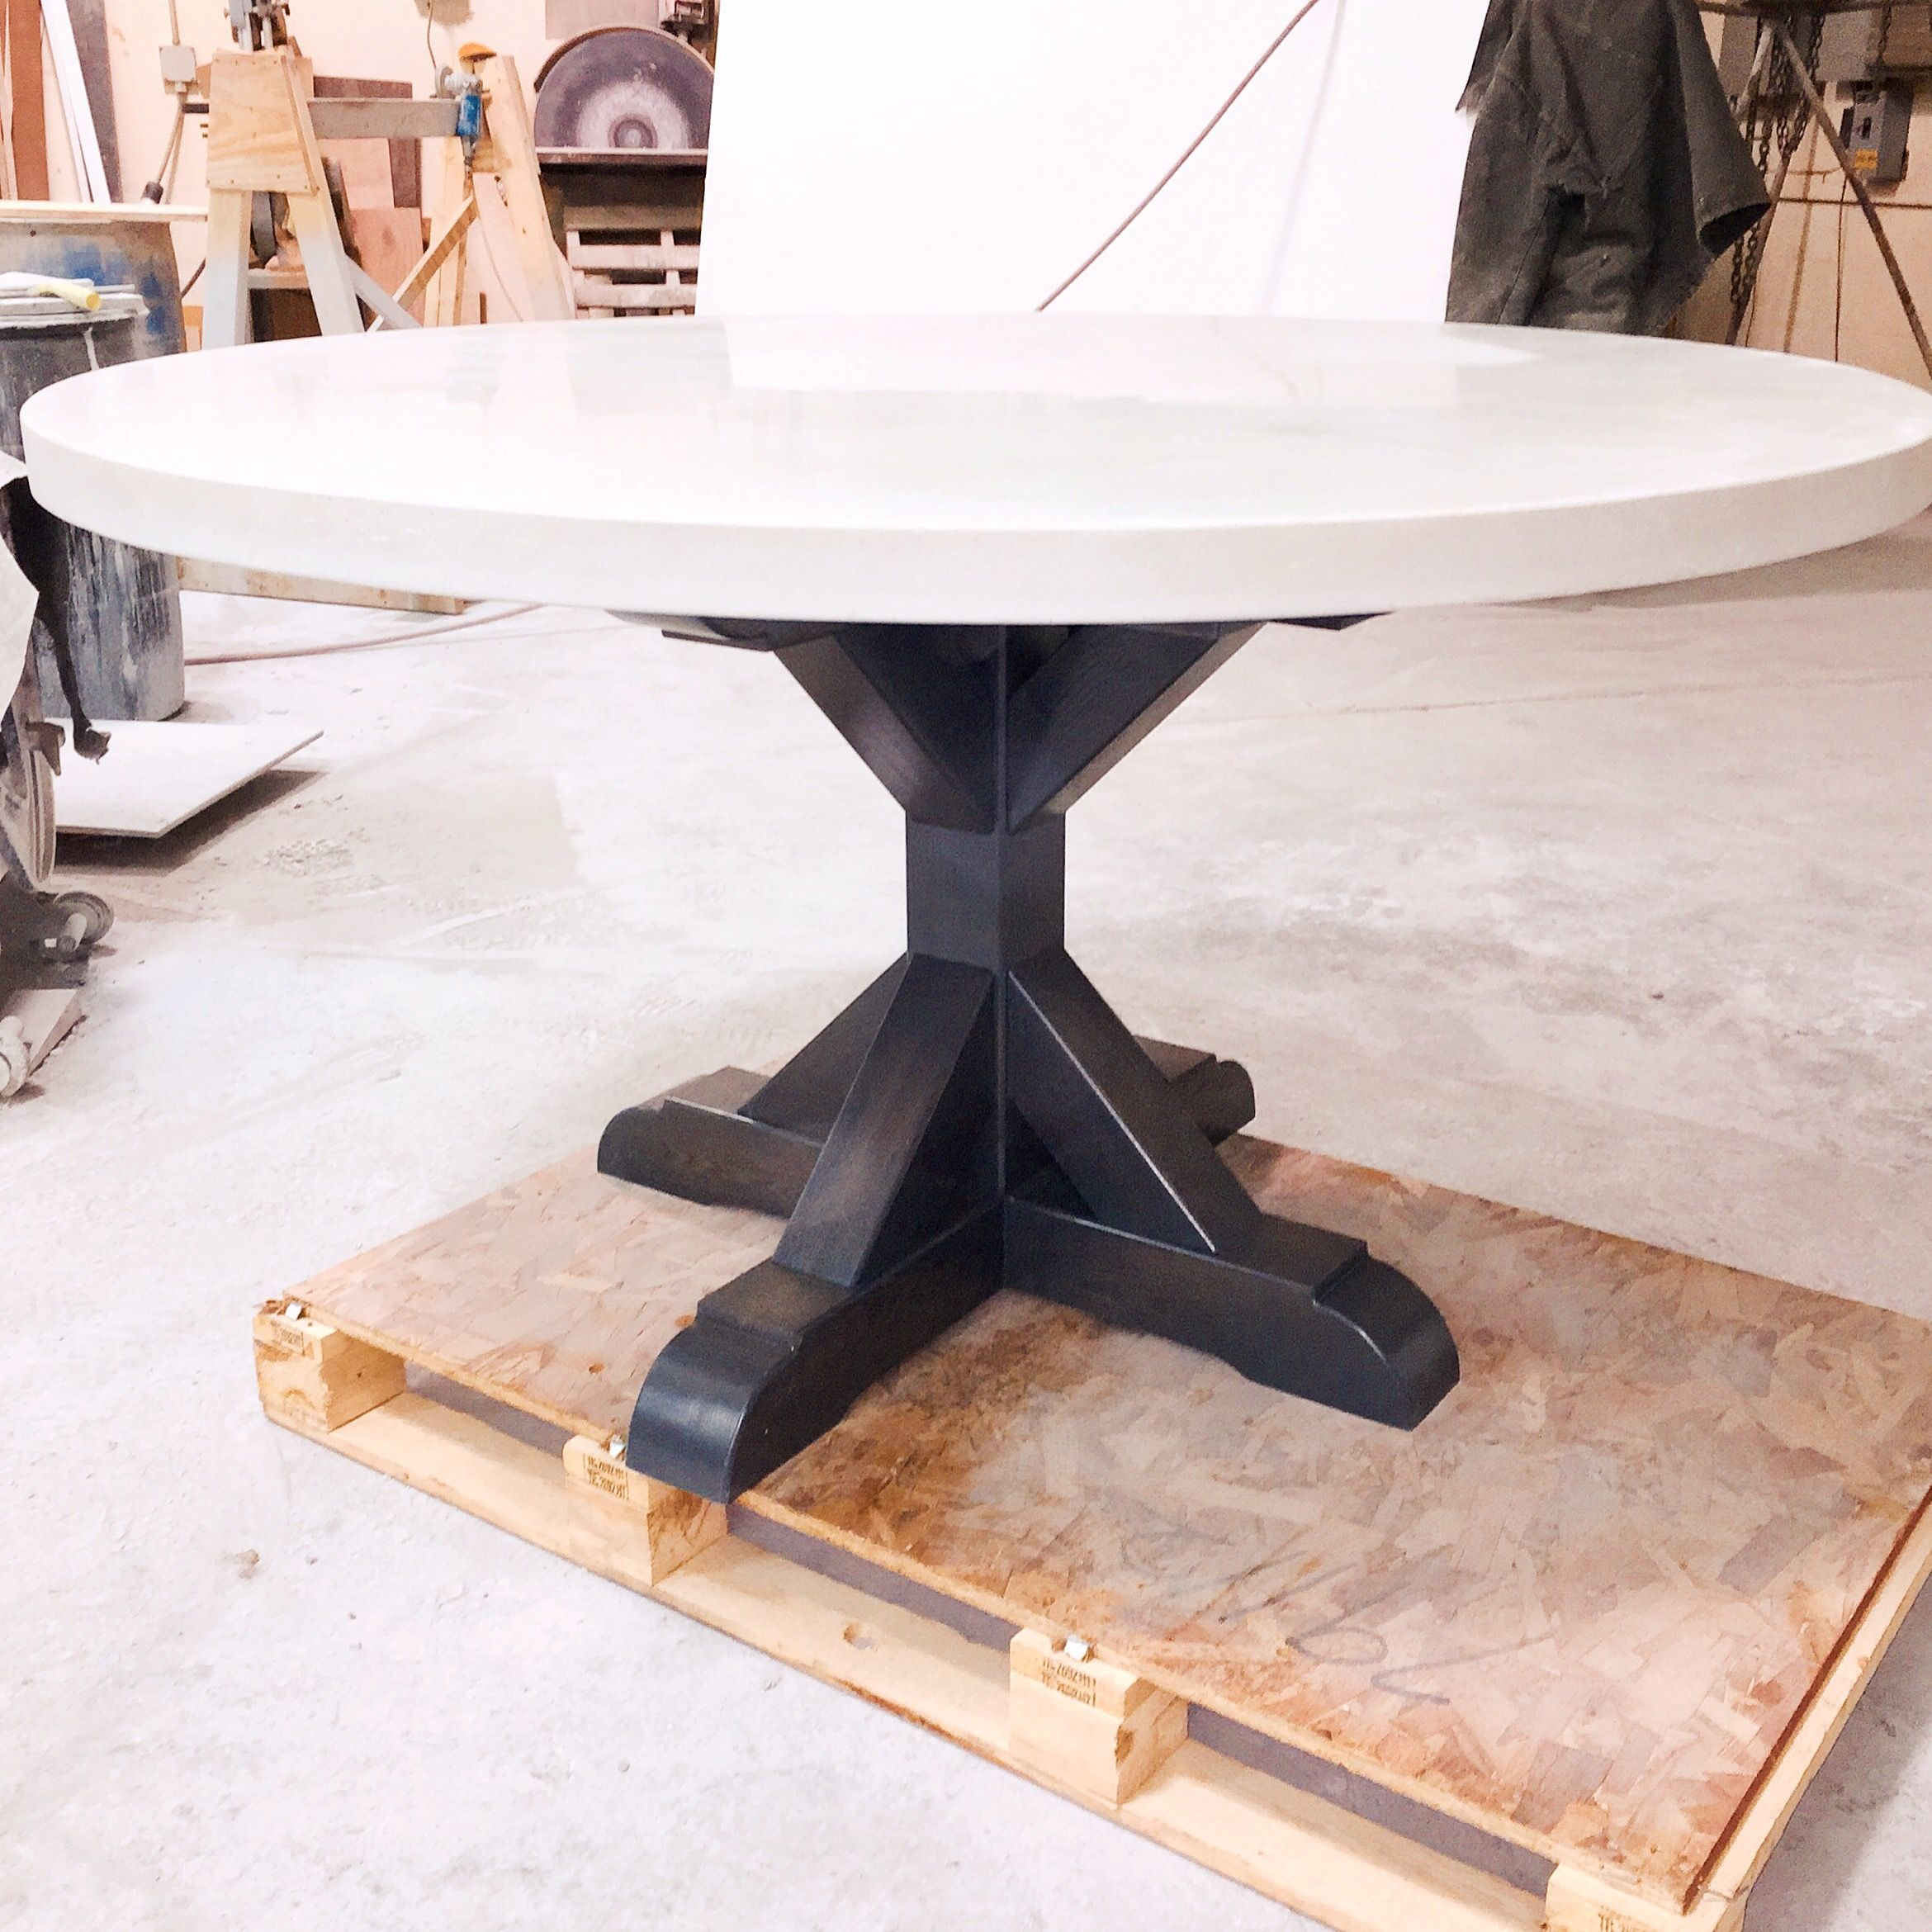 Hand Crafted Concrete Dining Table by 910 Castings  : 836191068169 from www.custommade.com size 2340 x 2340 jpeg 546kB